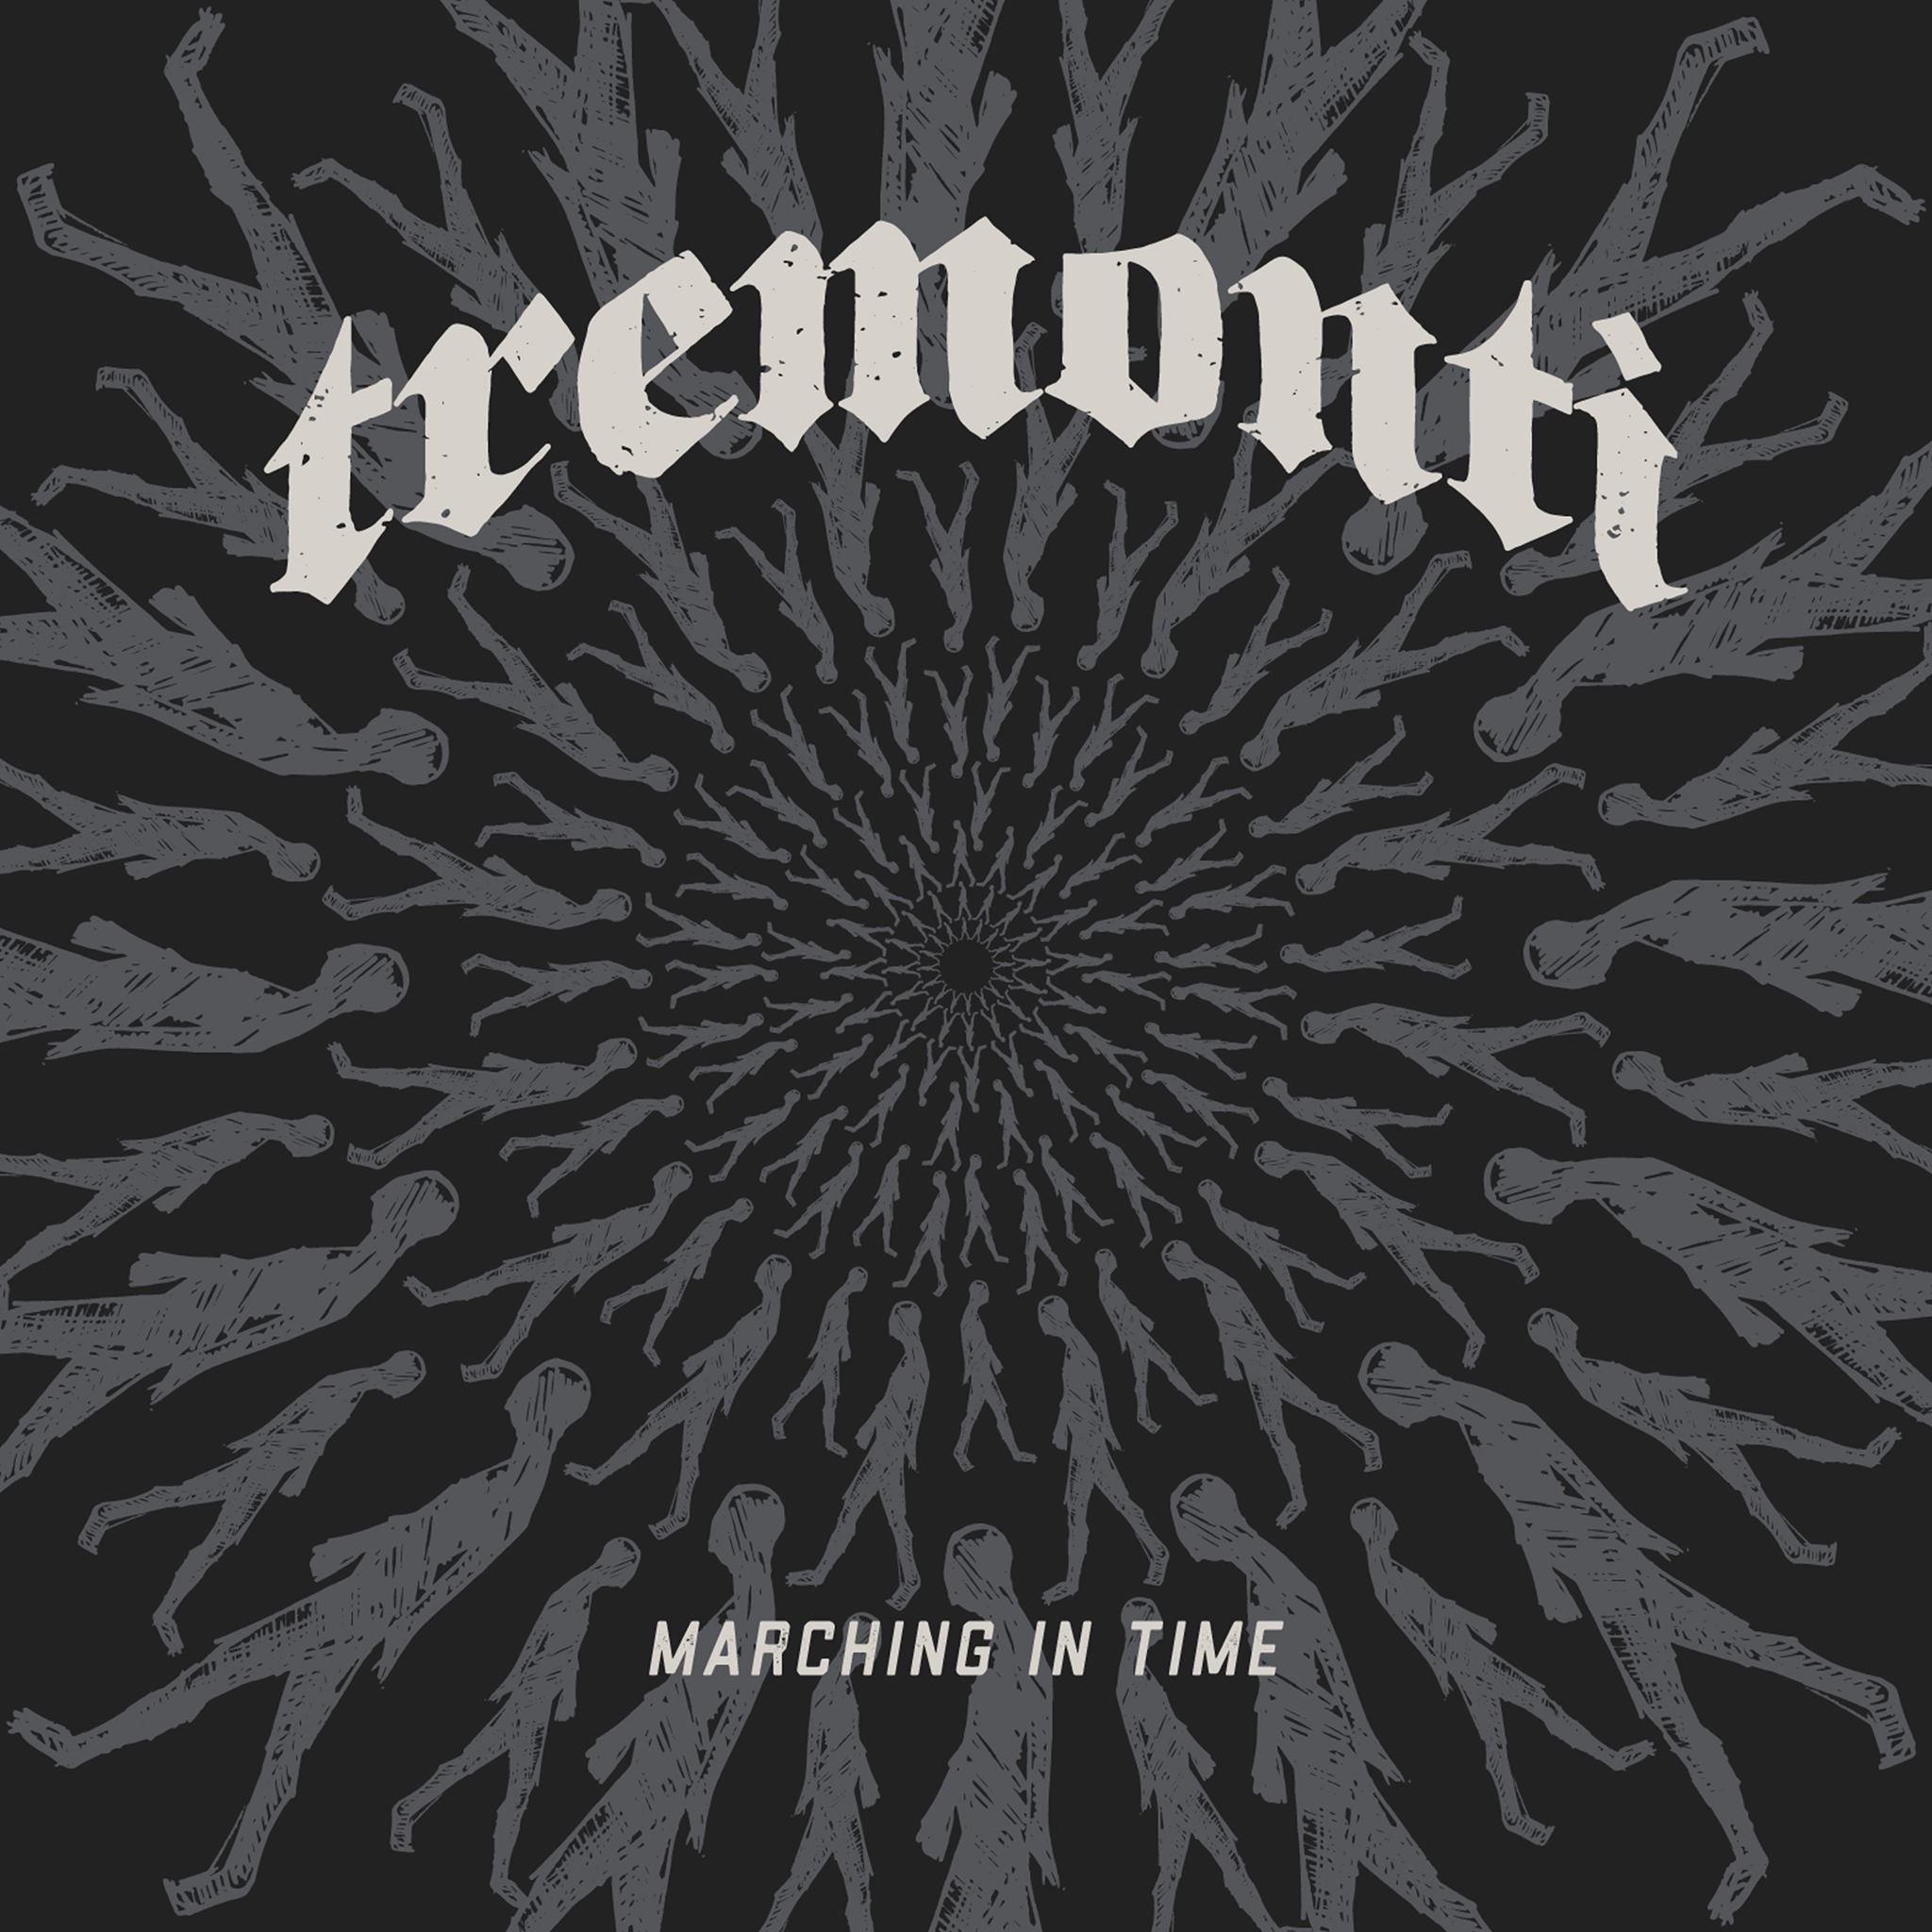 tremonti marching in time